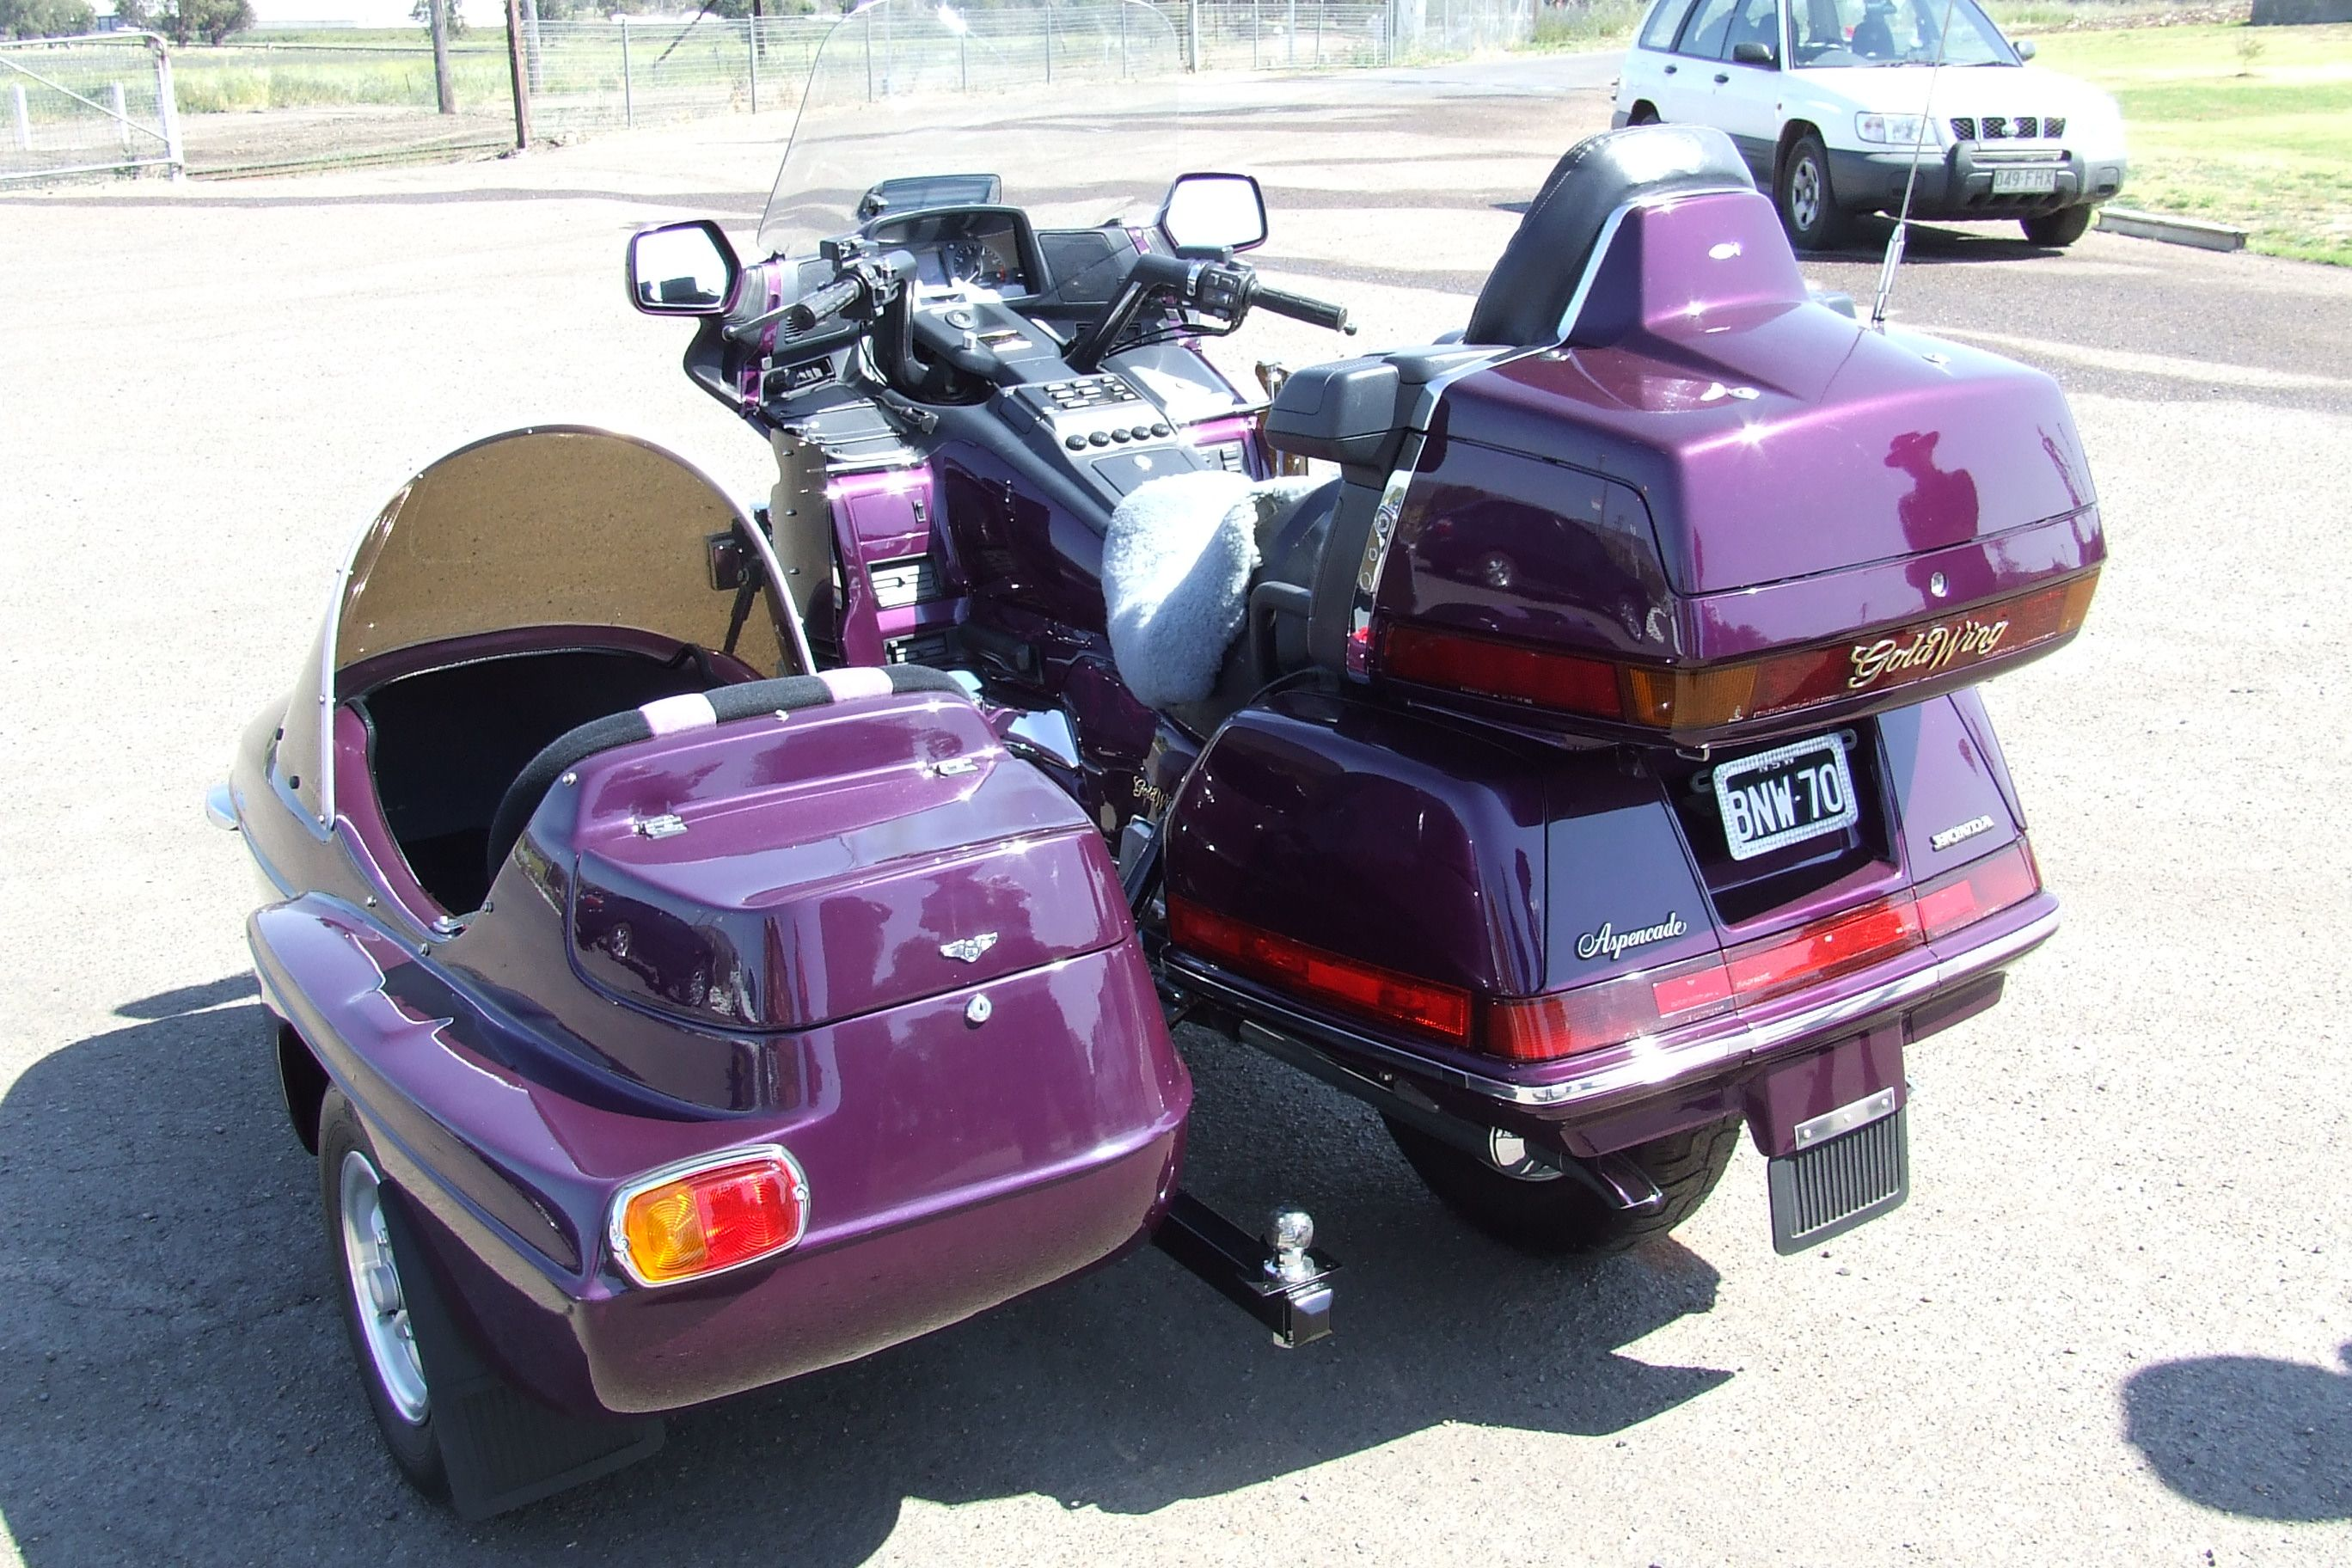 Gl1800 Trailer Wiring Diagram 3sgte St215 Honda Goldwing And Sidecar Note Also The Tow Ball For